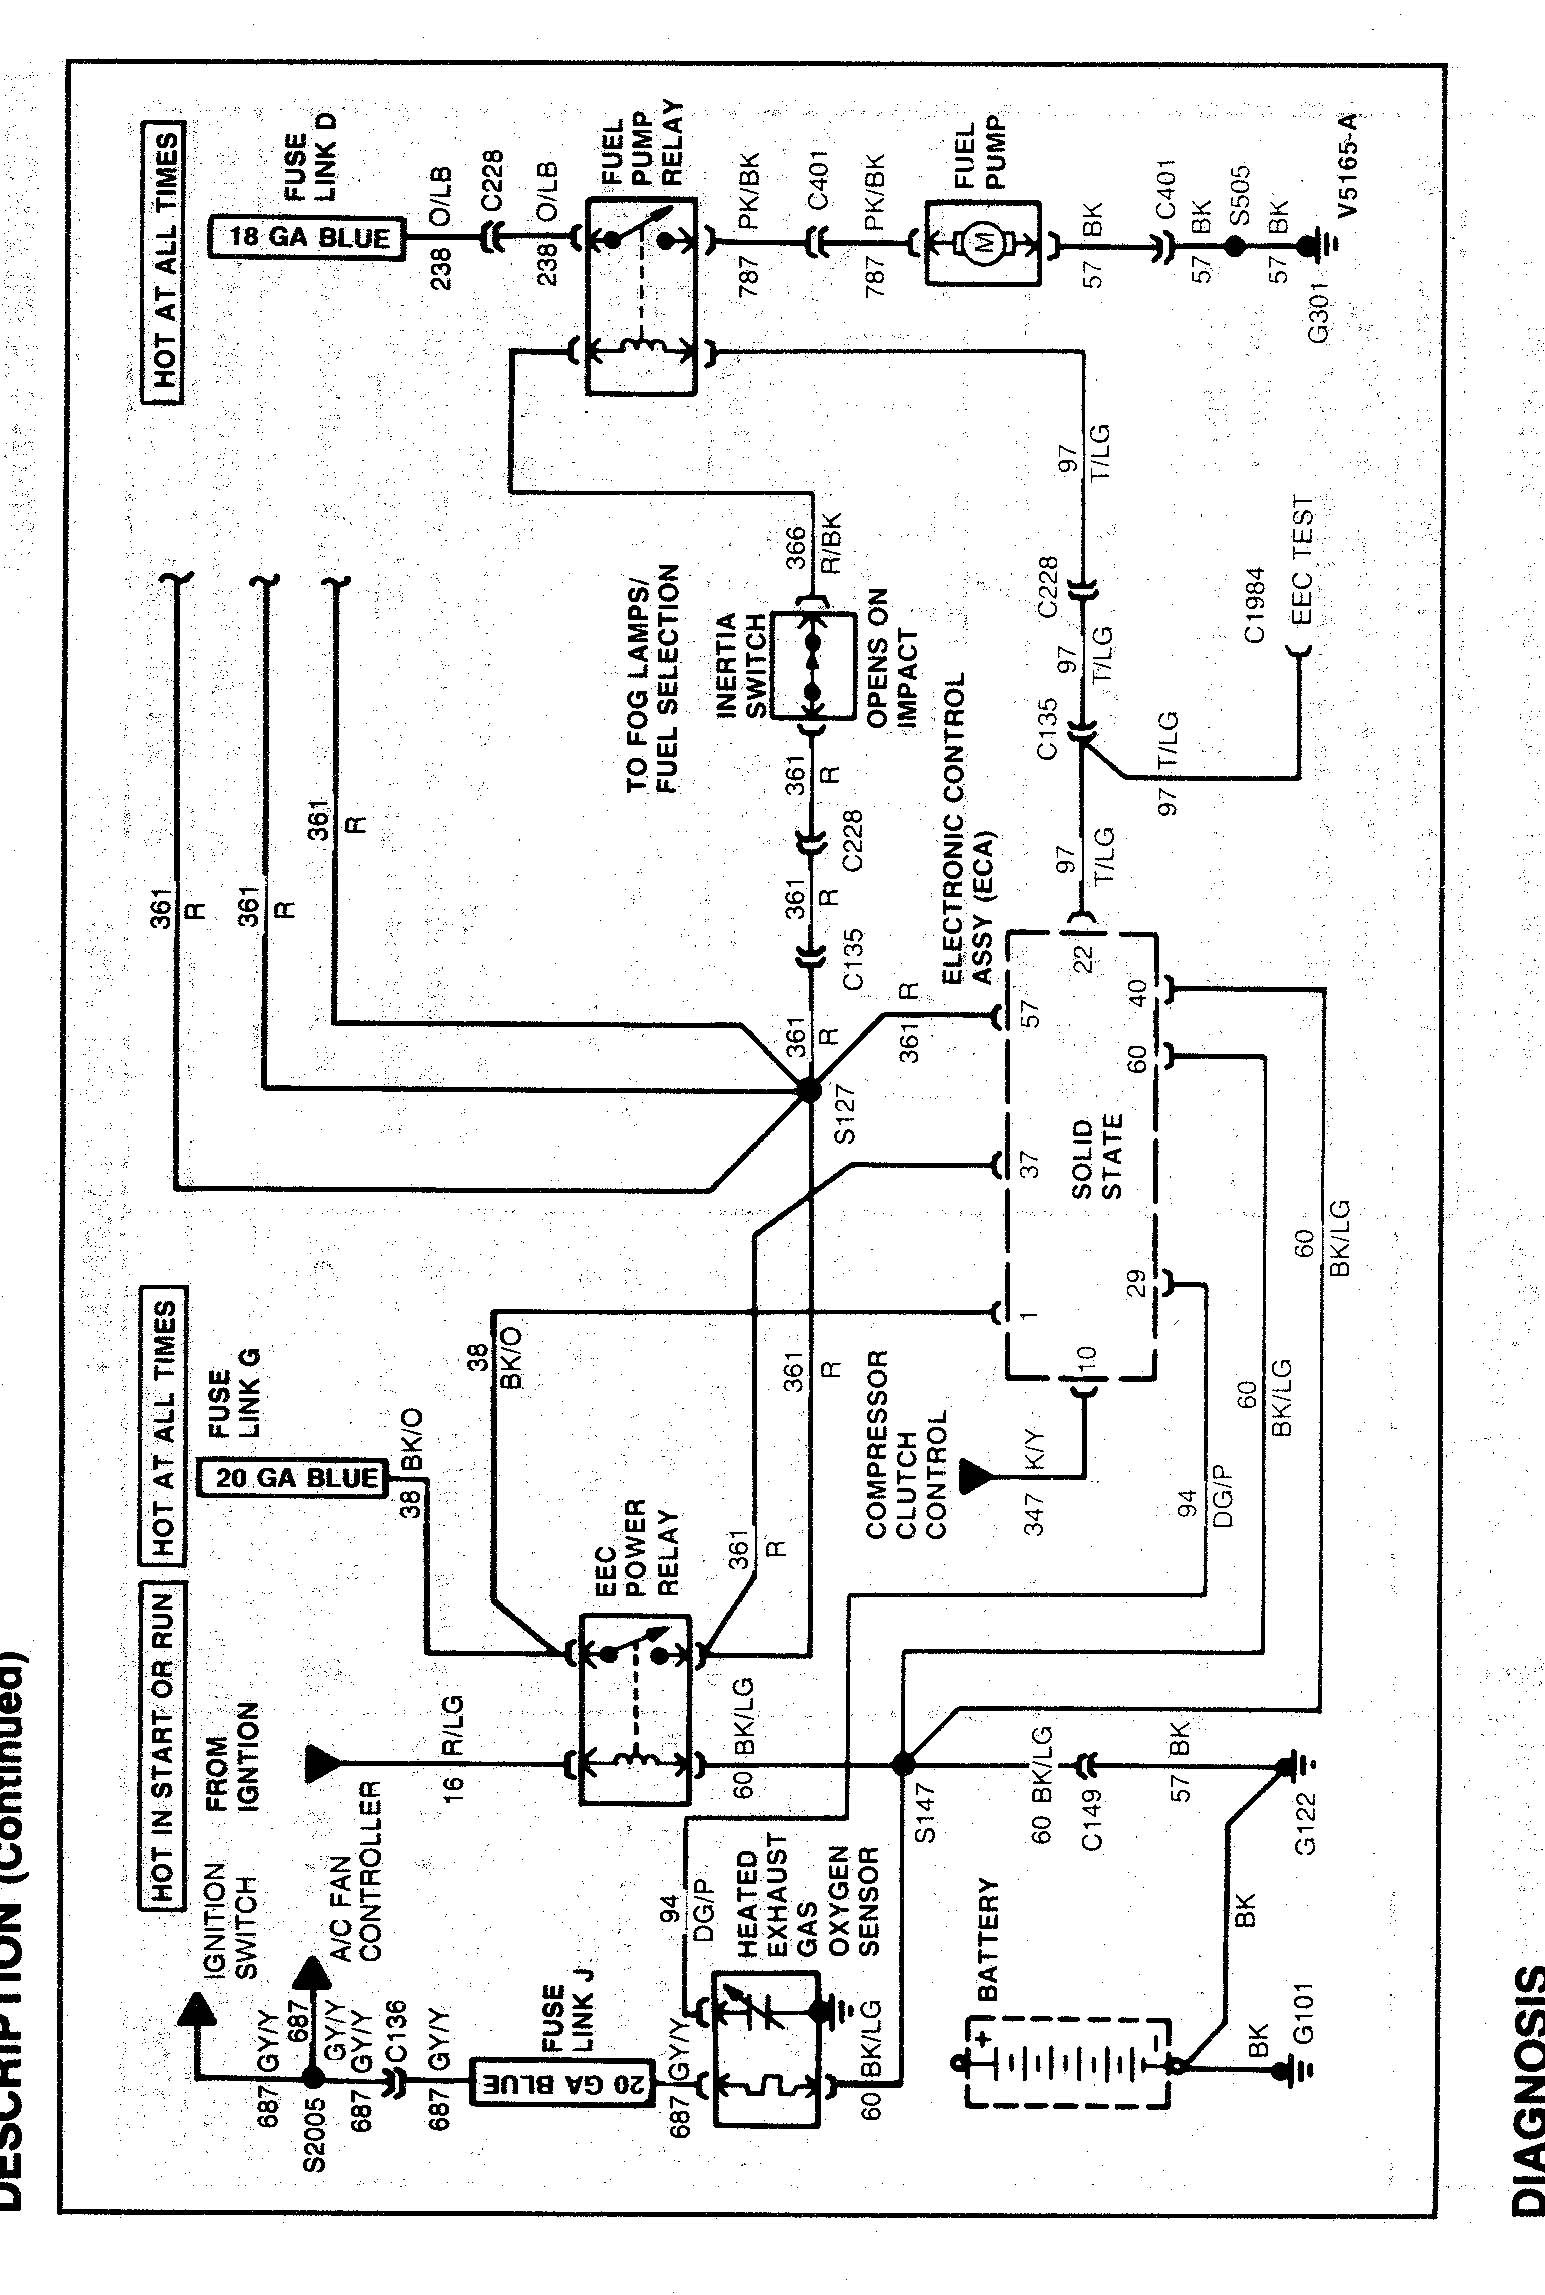 2005 Ford Explorer Fuel Pump Wiring Diagram Trusted 2001 F150 System Diy Enthusiasts Diagrams U2022 1990